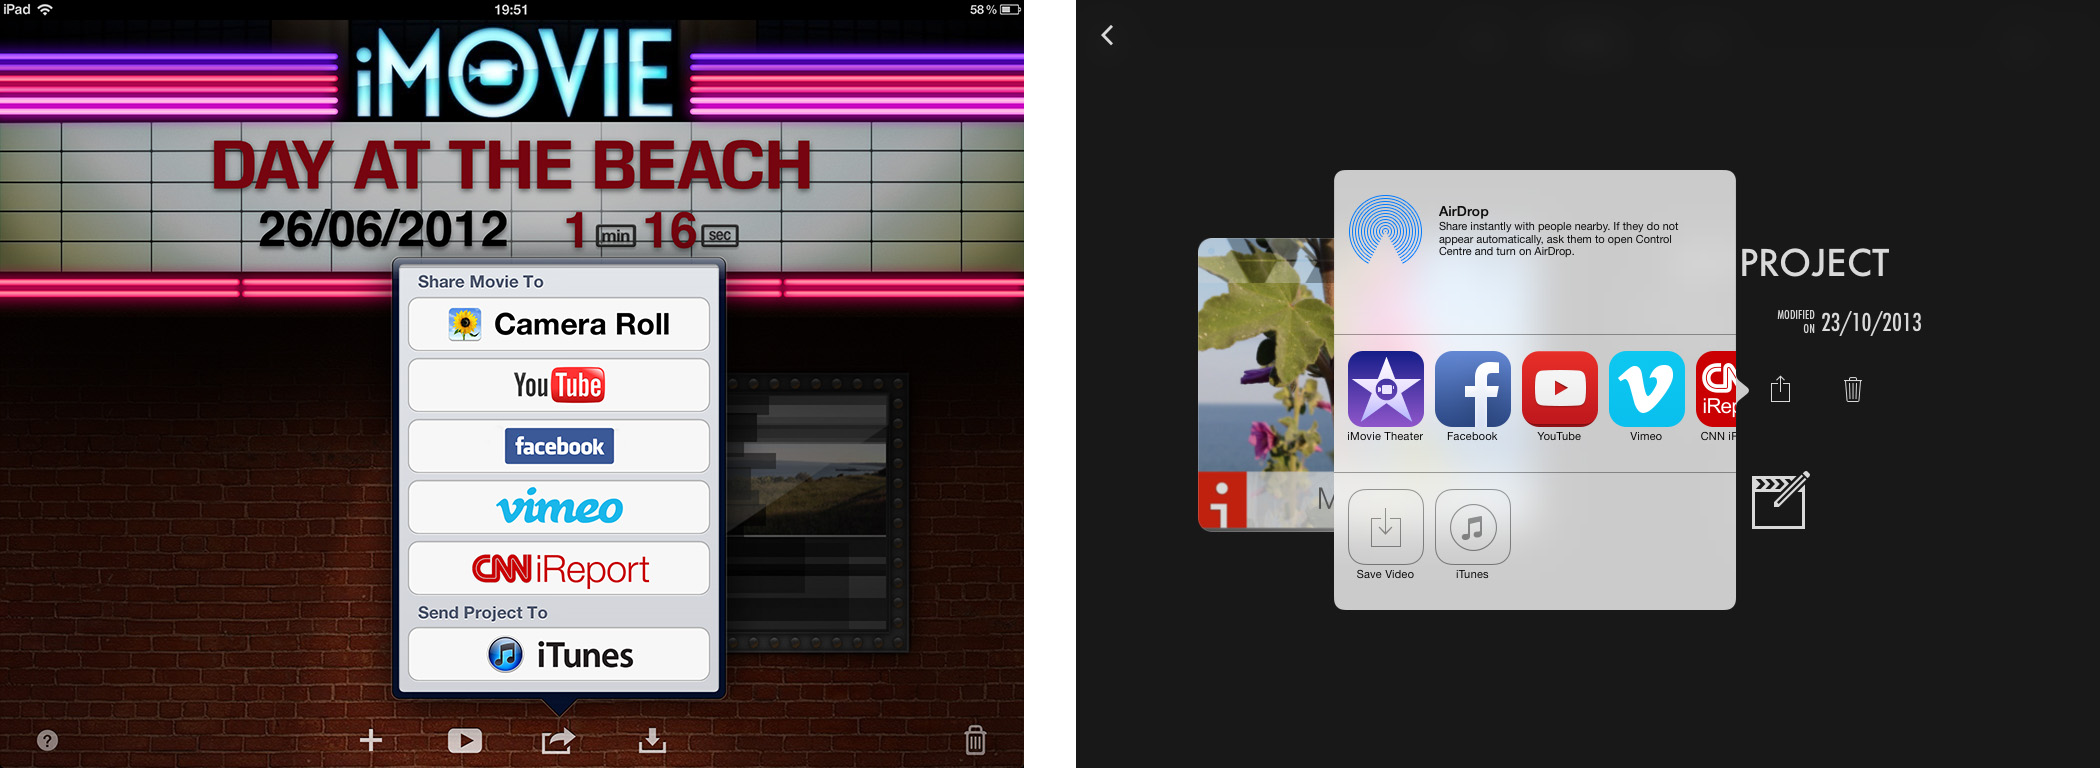 Imovie For Ios 7parison 3 Thumb